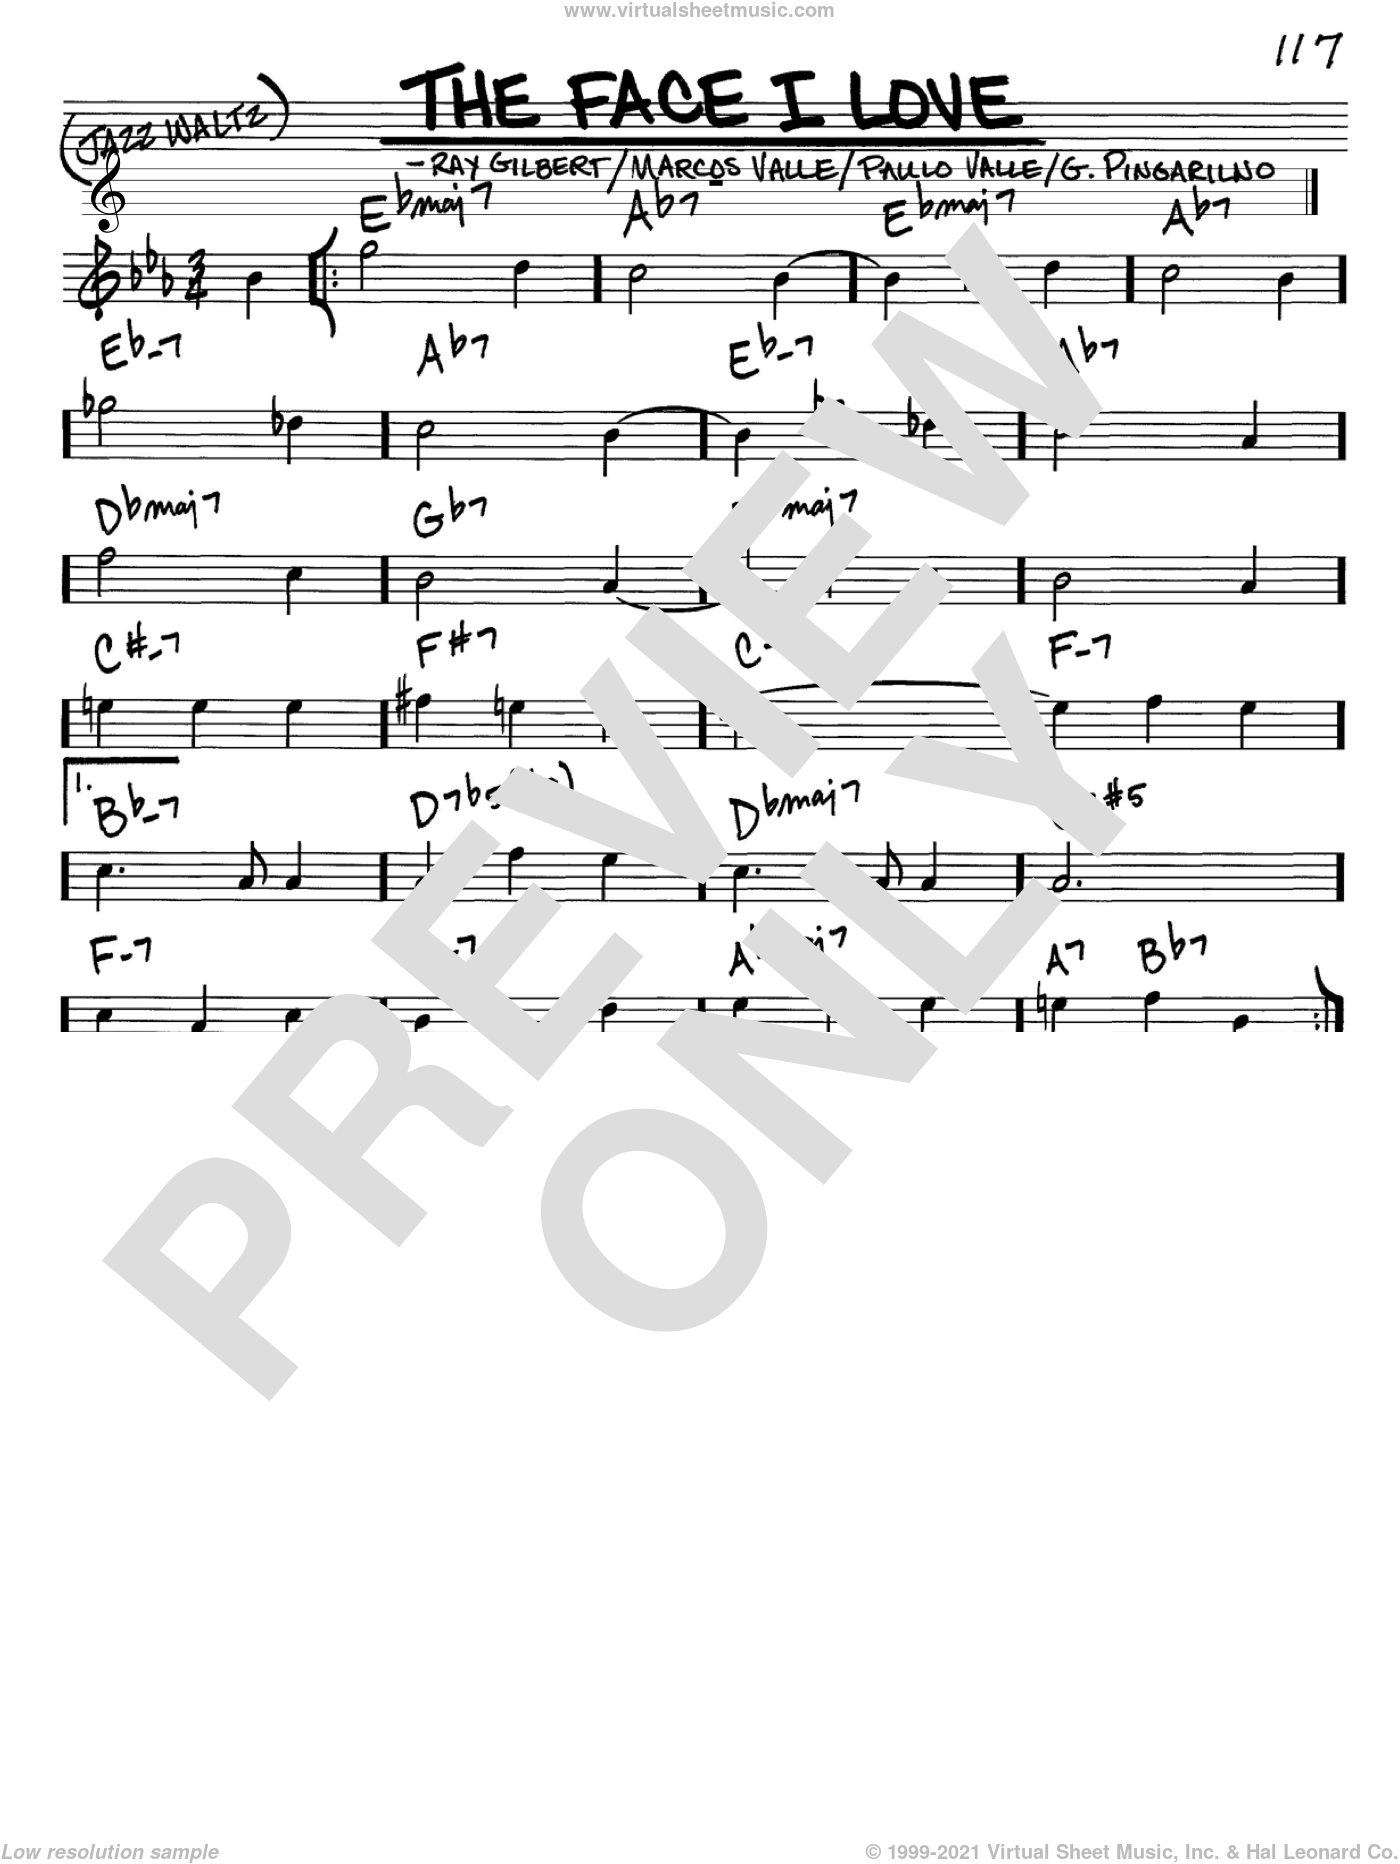 The Face I Love sheet music for voice and other instruments (in C) by Astrud Gilberto, G. Pingarilno, Marcos Valle, Paulo Valle and Ray Gilbert, intermediate skill level